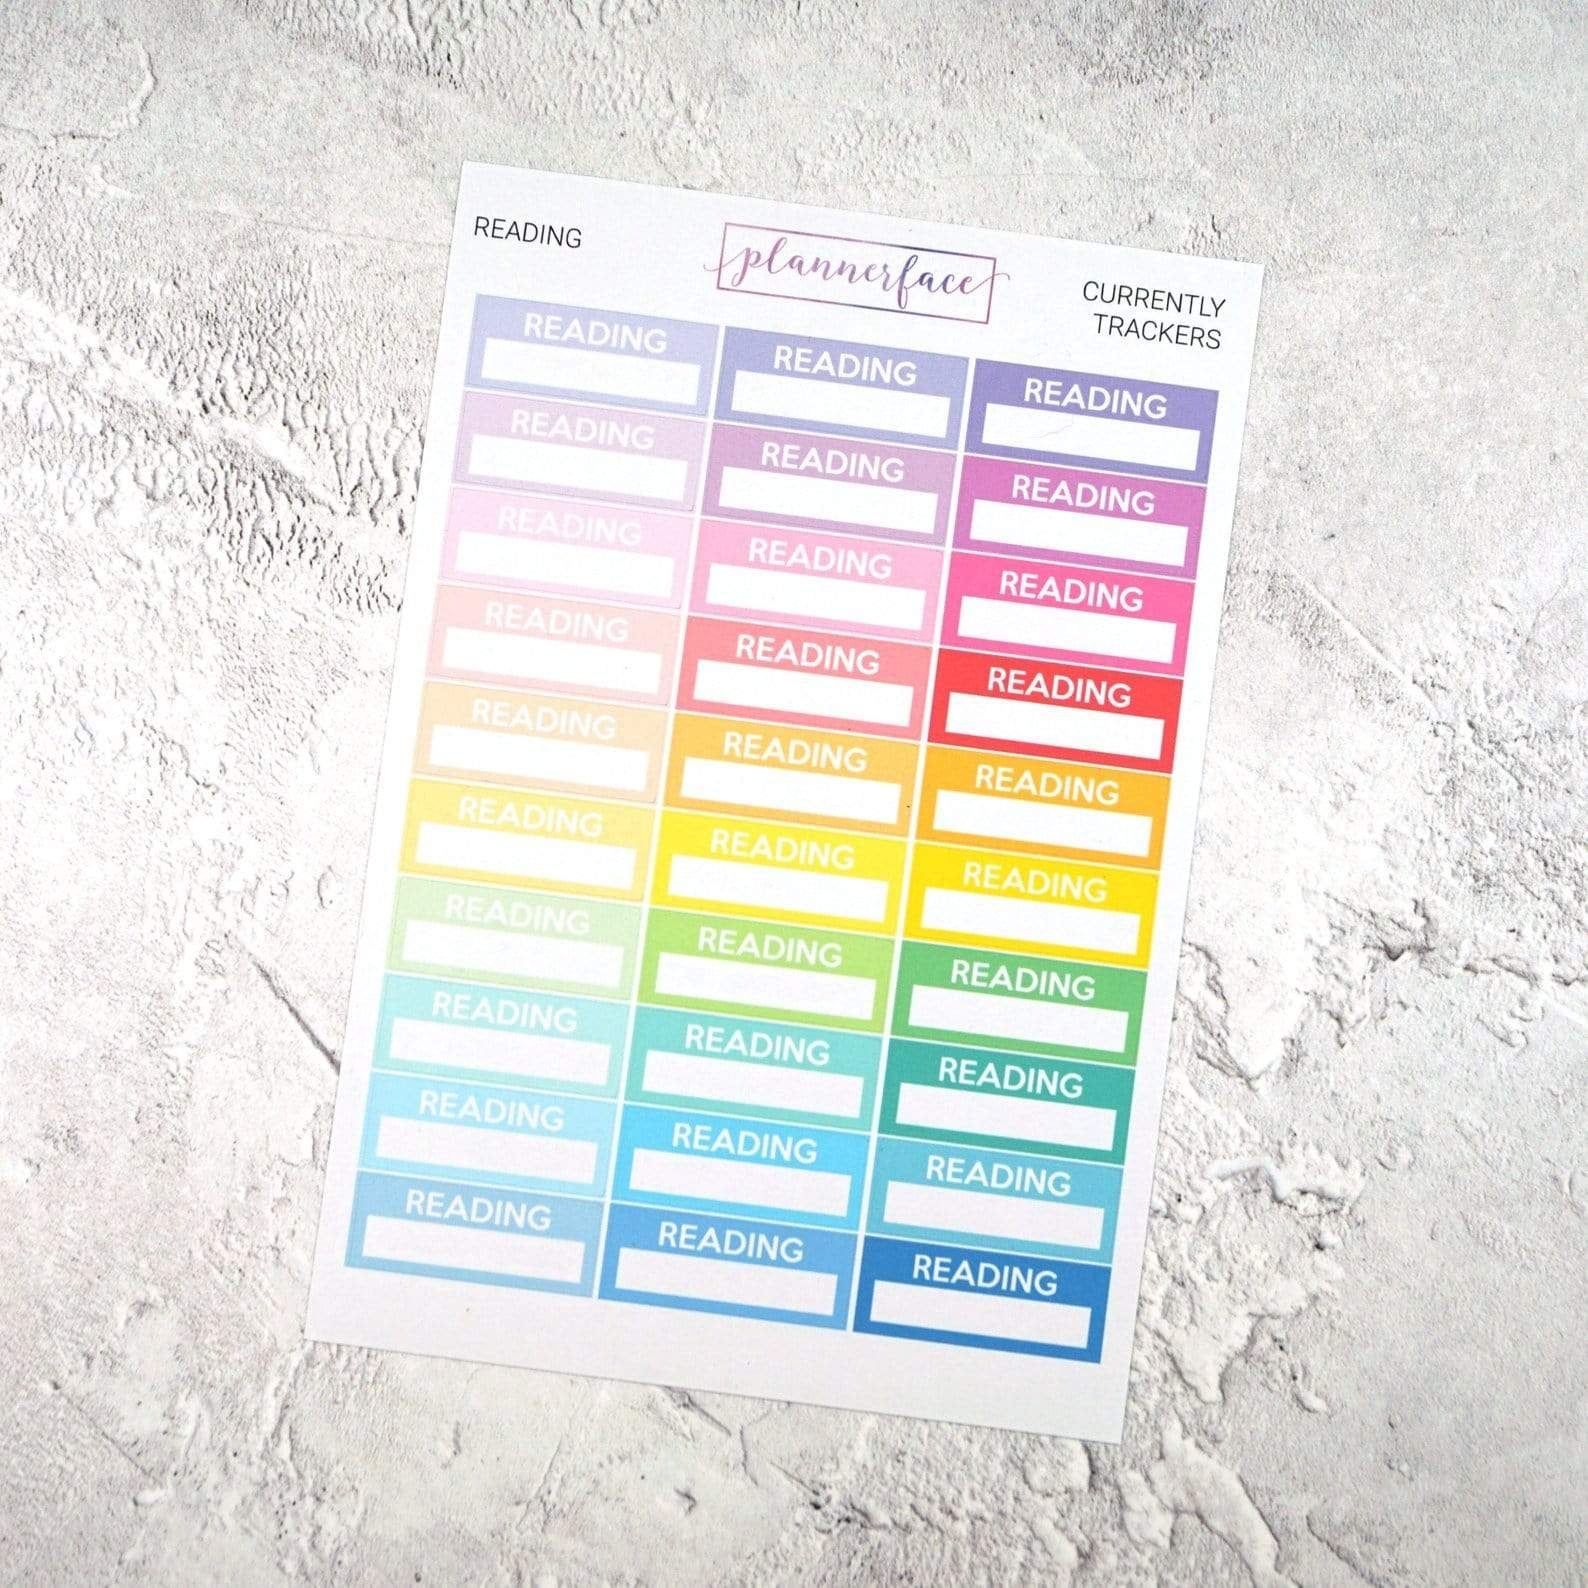 Plannerface Reading Currently Tracker | Multicolour Planner Stickers